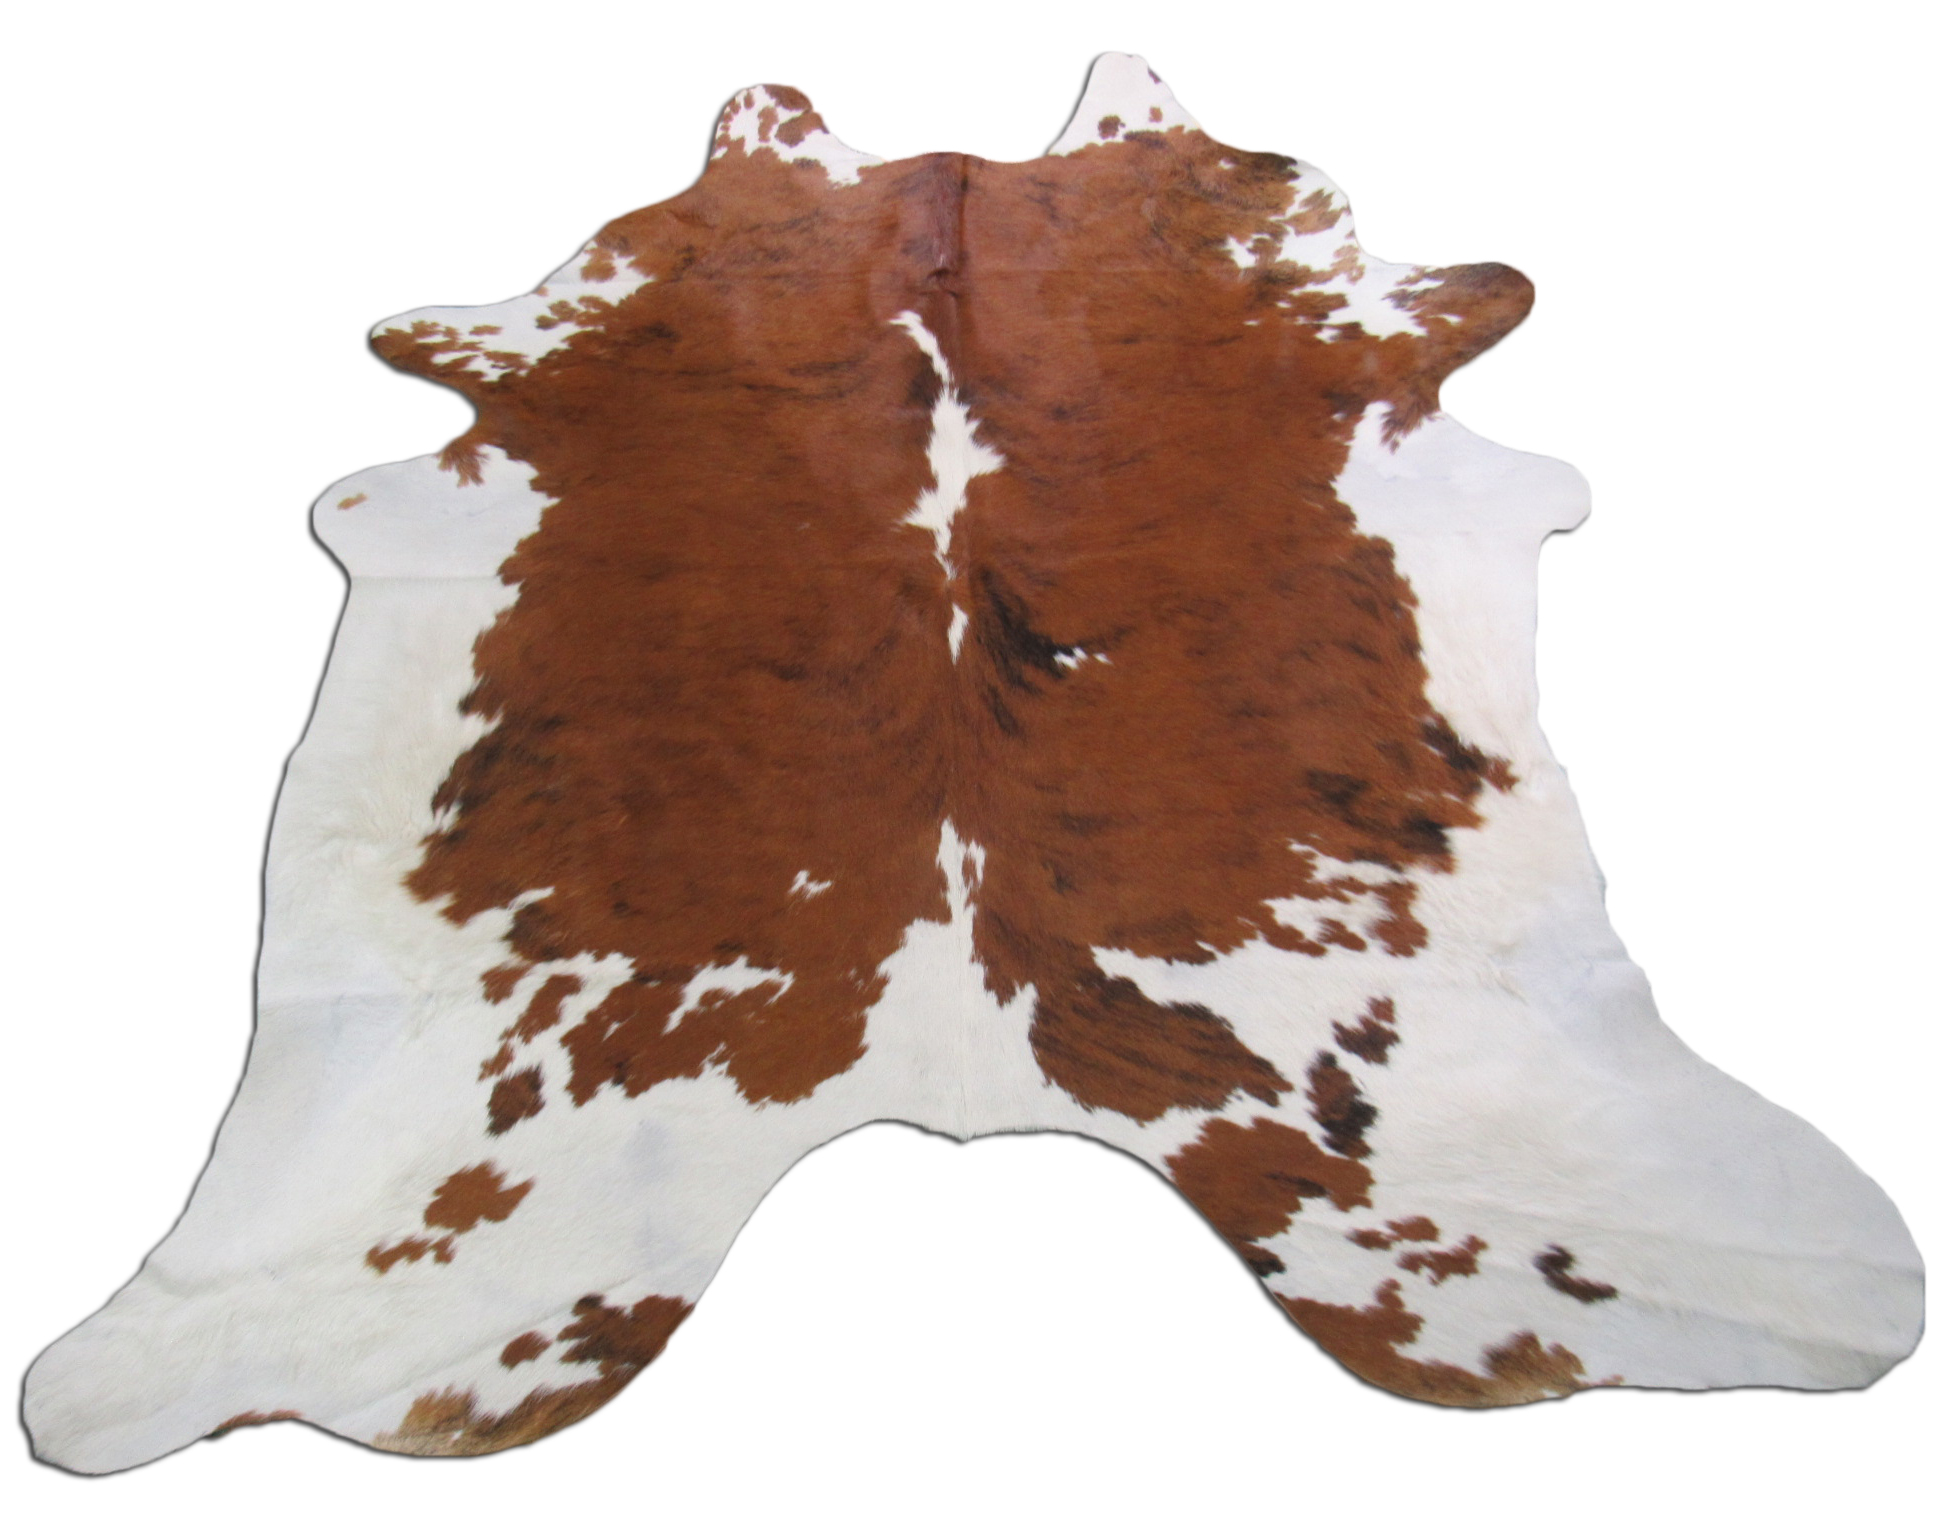 A-1137 White Belly Brindle Cowhide Rug Size: 7' X 7'